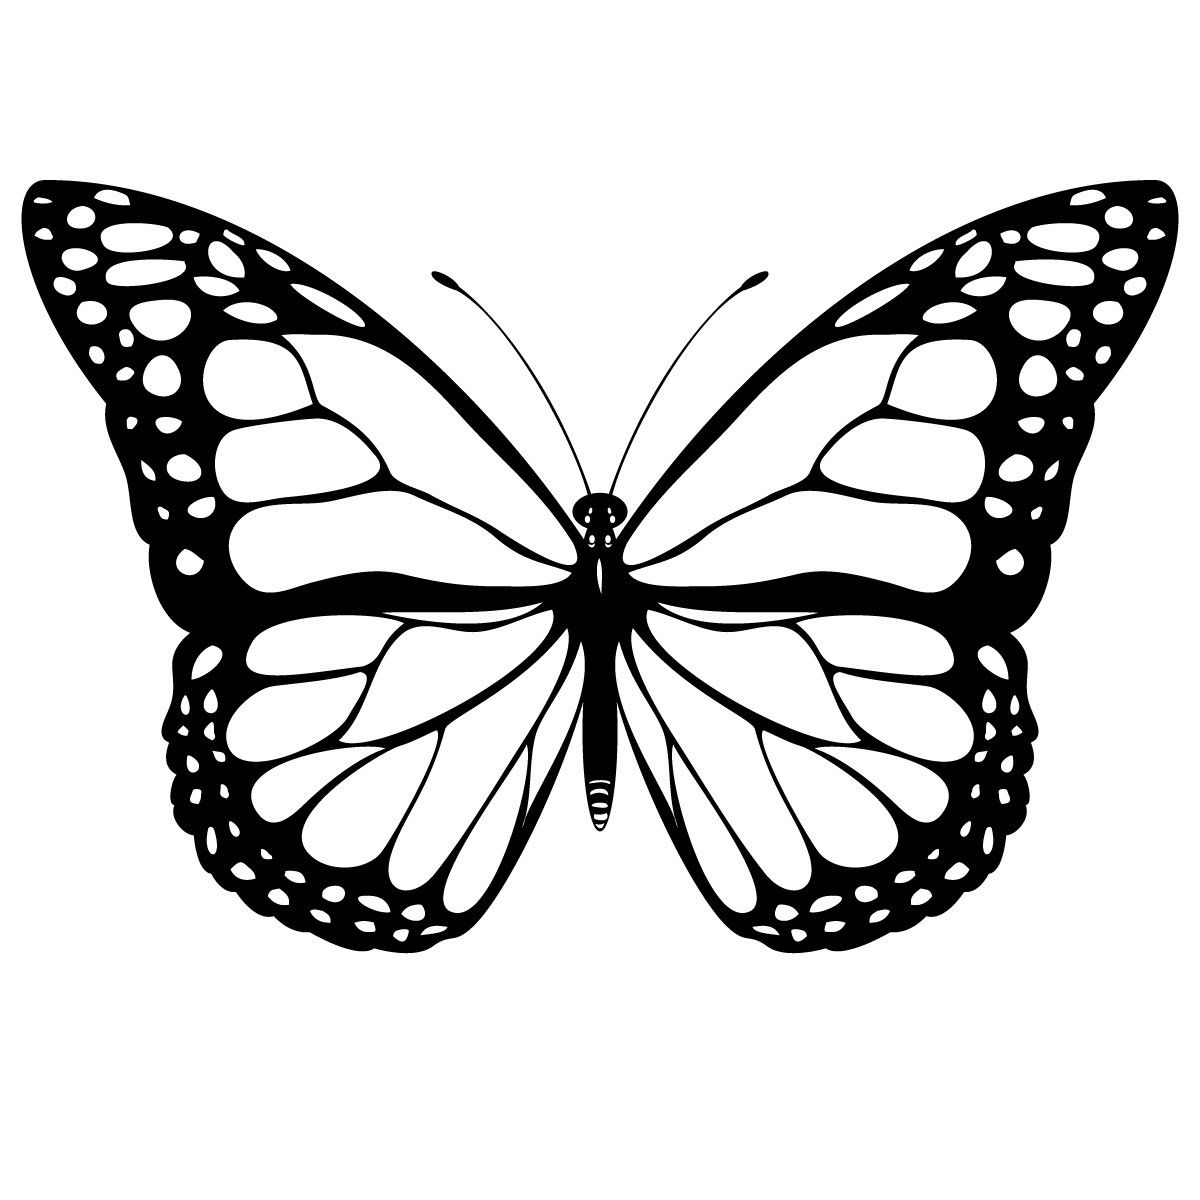 Coloring pages for butterflies - Butterfly Coloring Sheets Printables Free Printable Butterfly Coloring Pages For Kids